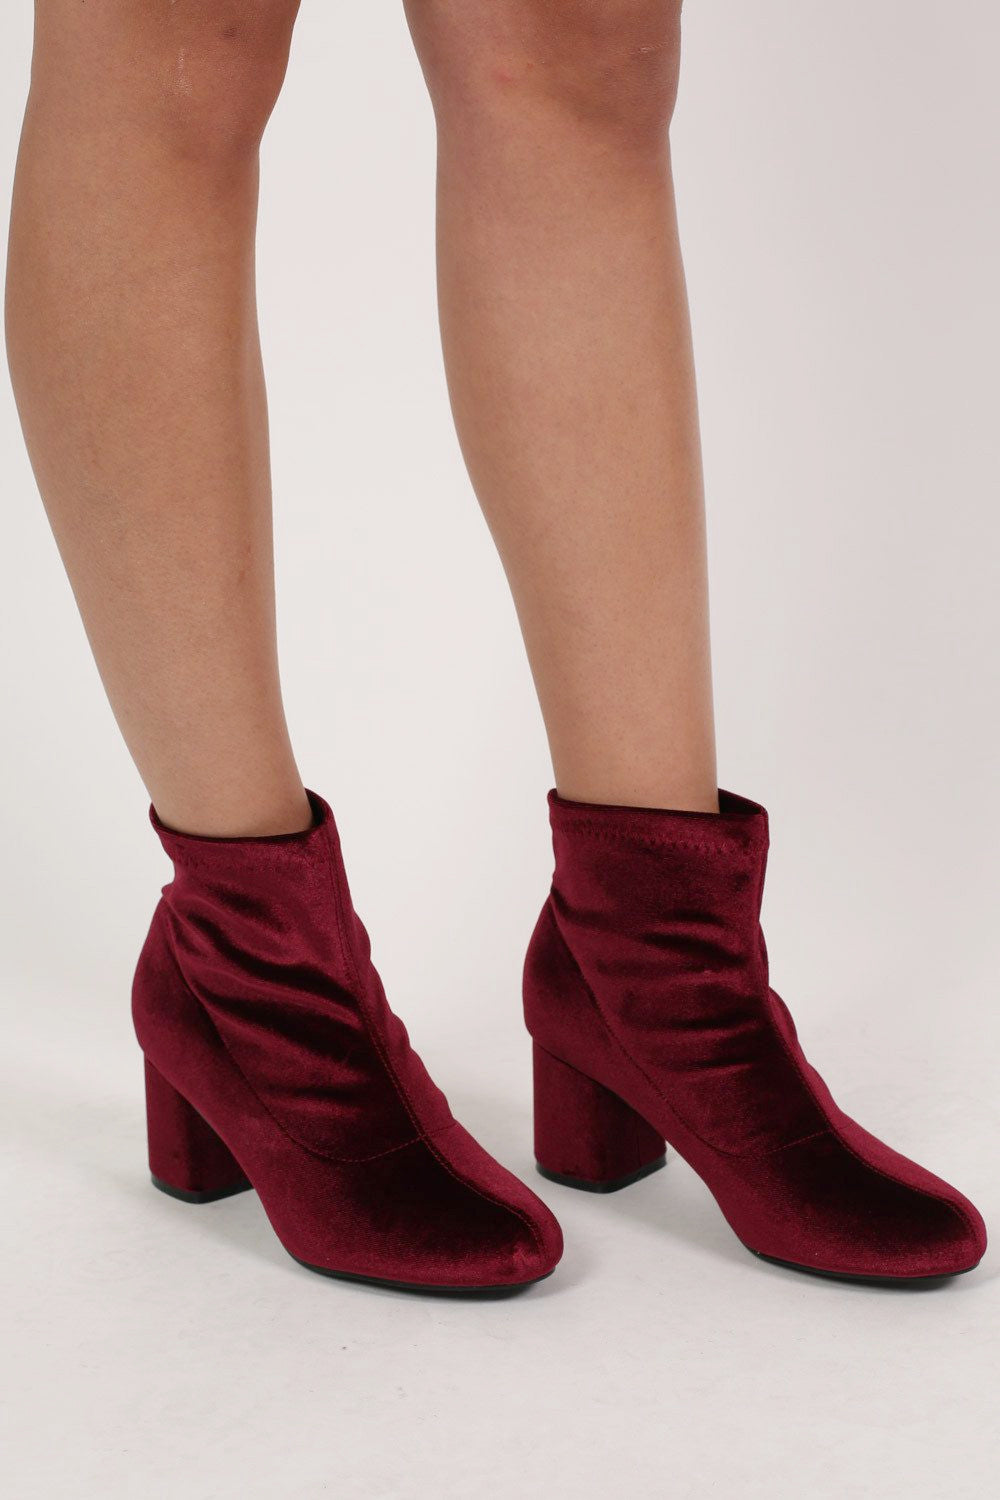 Shop velvet boots at Neiman Marcus, where you will find free shipping on the latest in fashion from top designers.